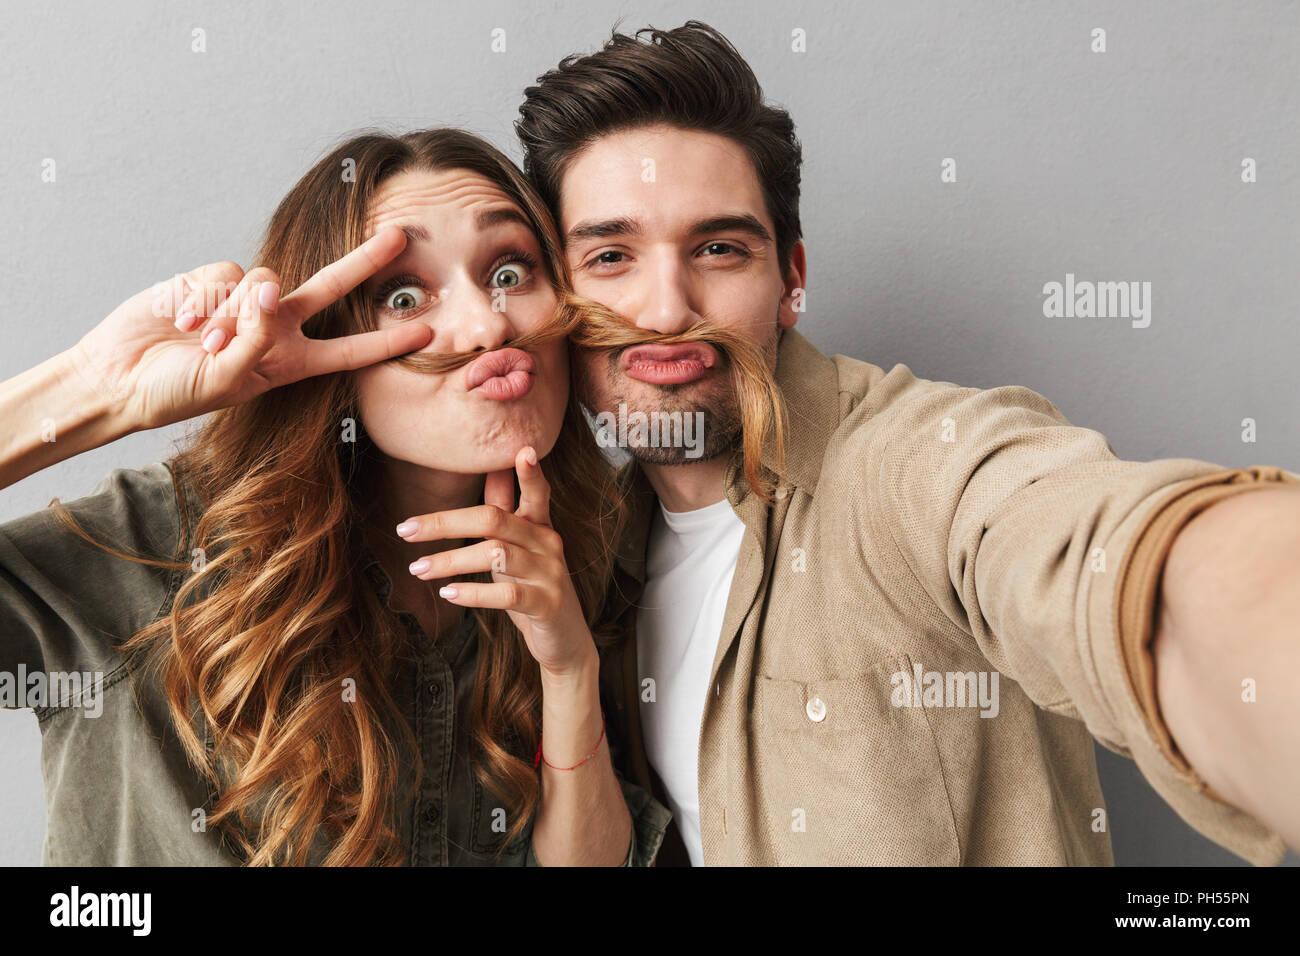 Portrait of a happy young couple hugging while taking a selfie and grimacing isolated over gray background - Stock Image